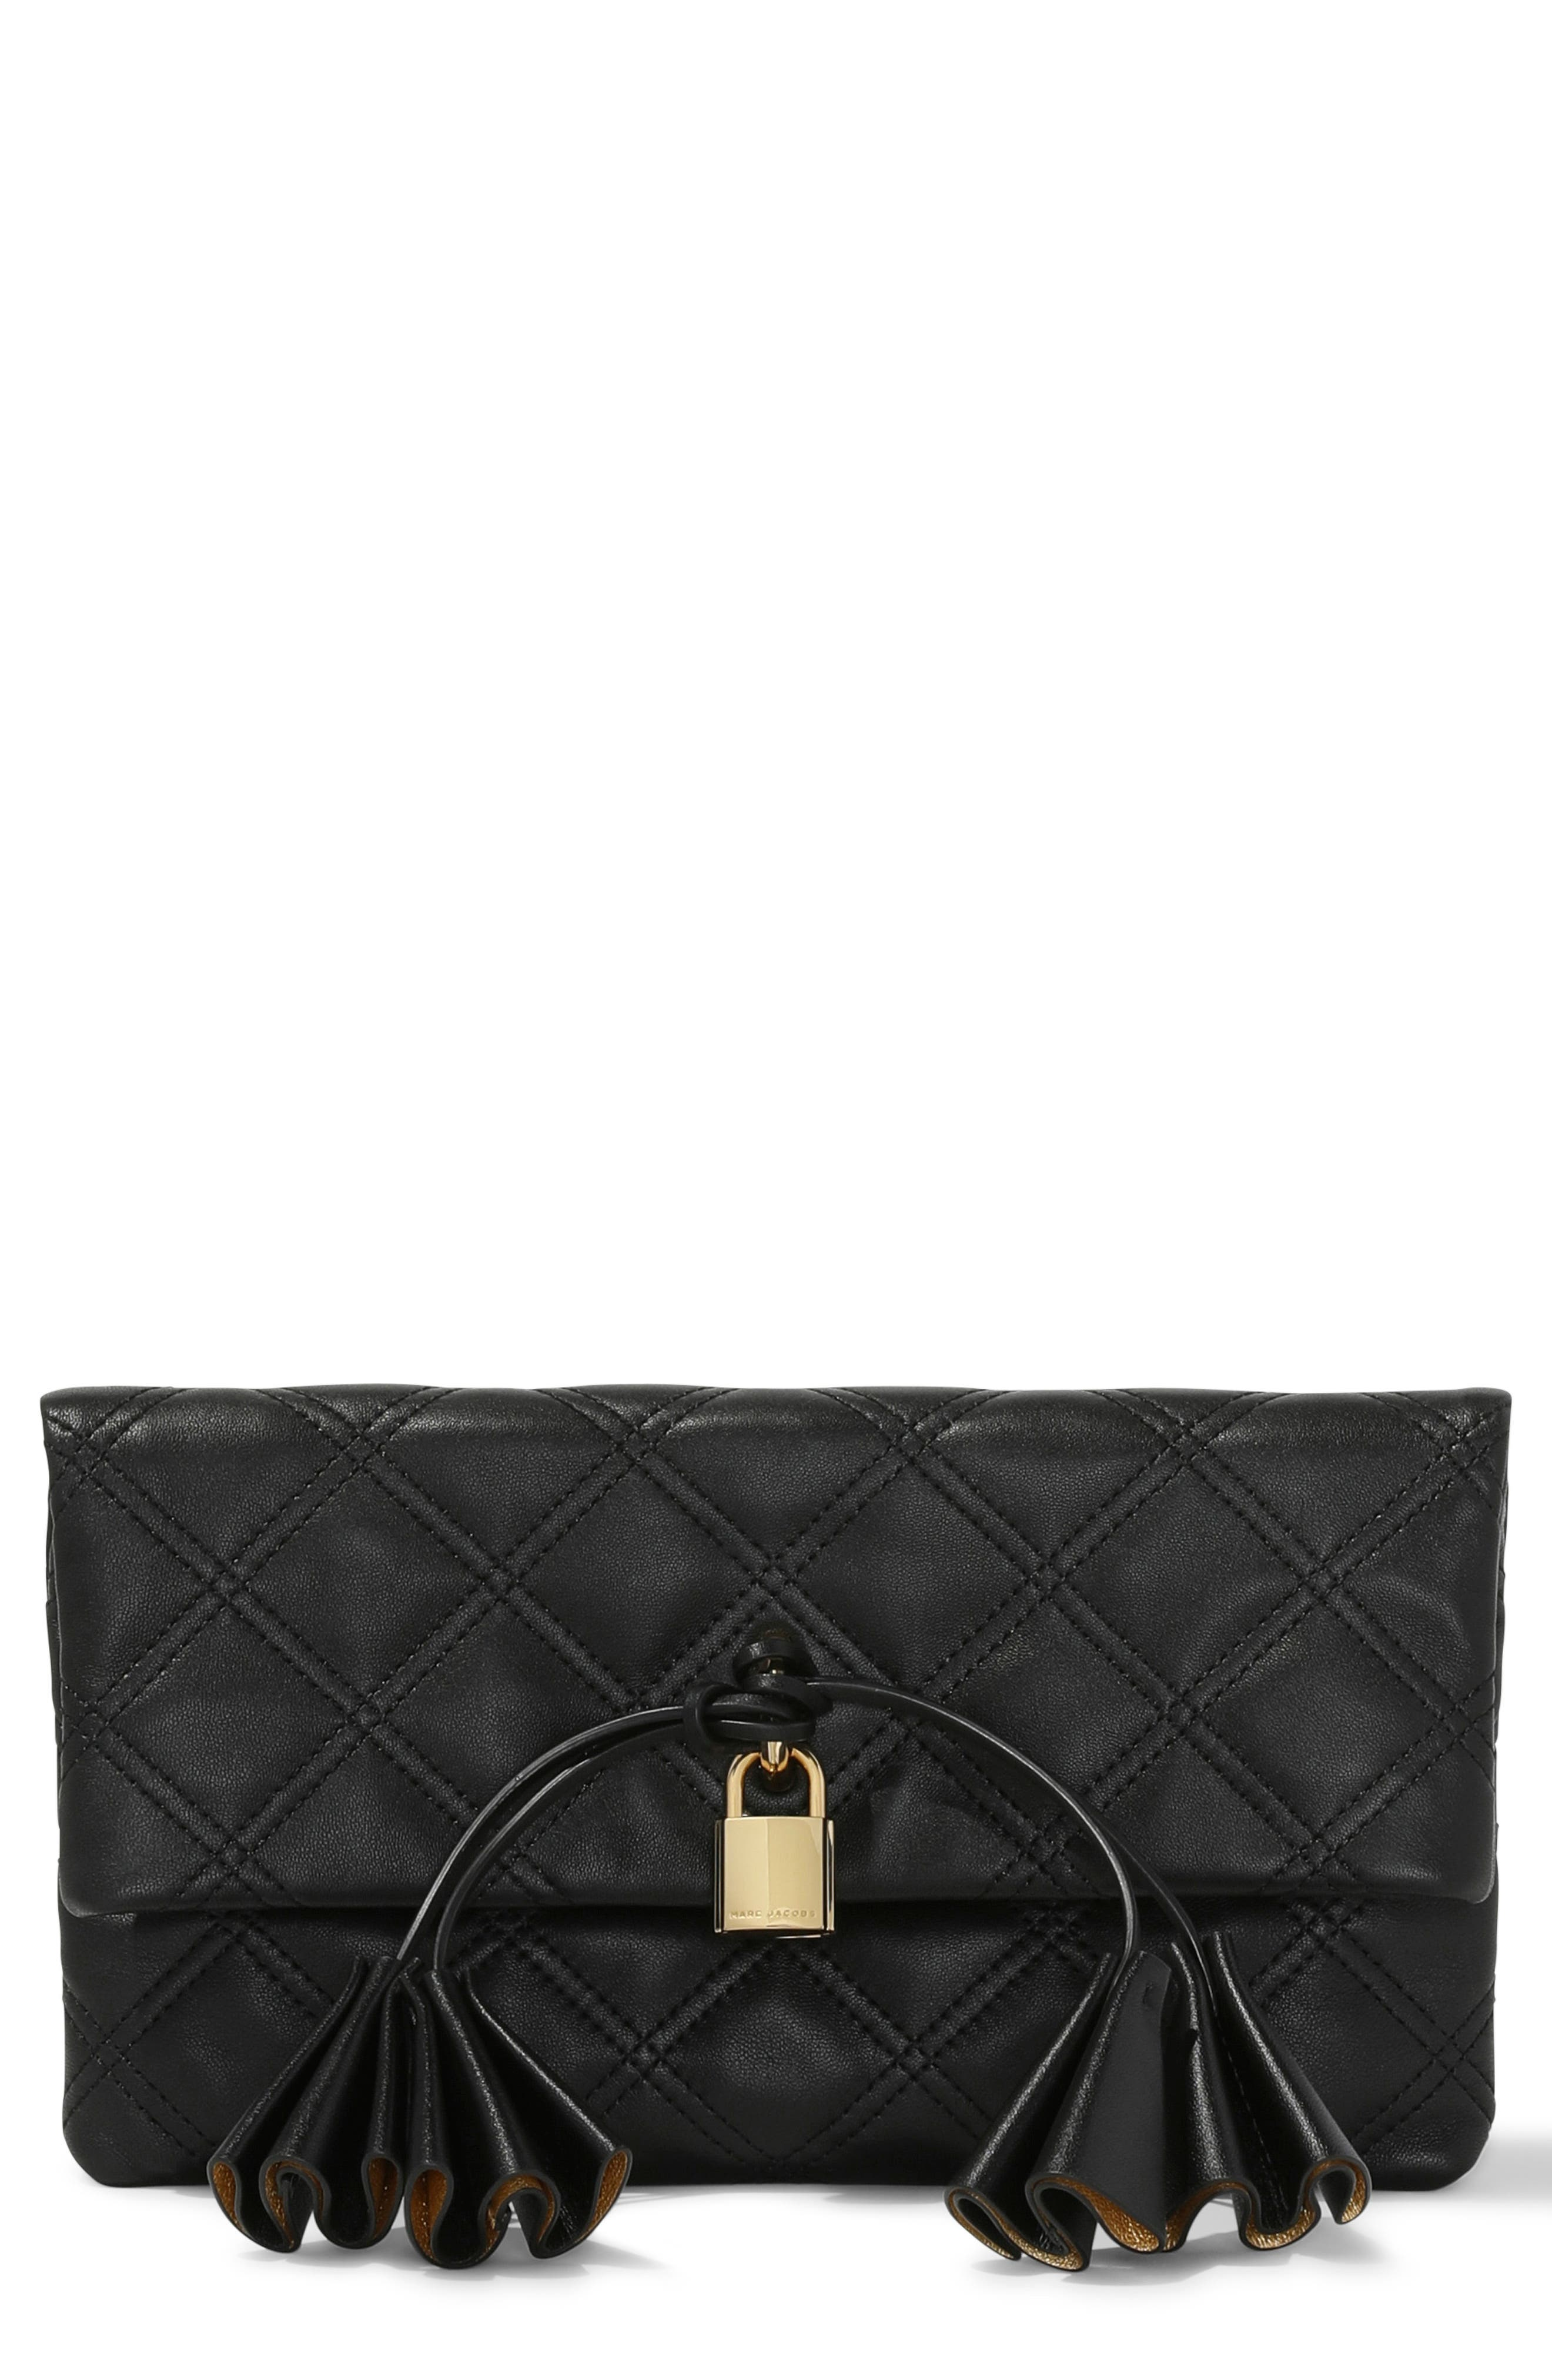 Image of THE MARC JACOBS The Leather Clutch